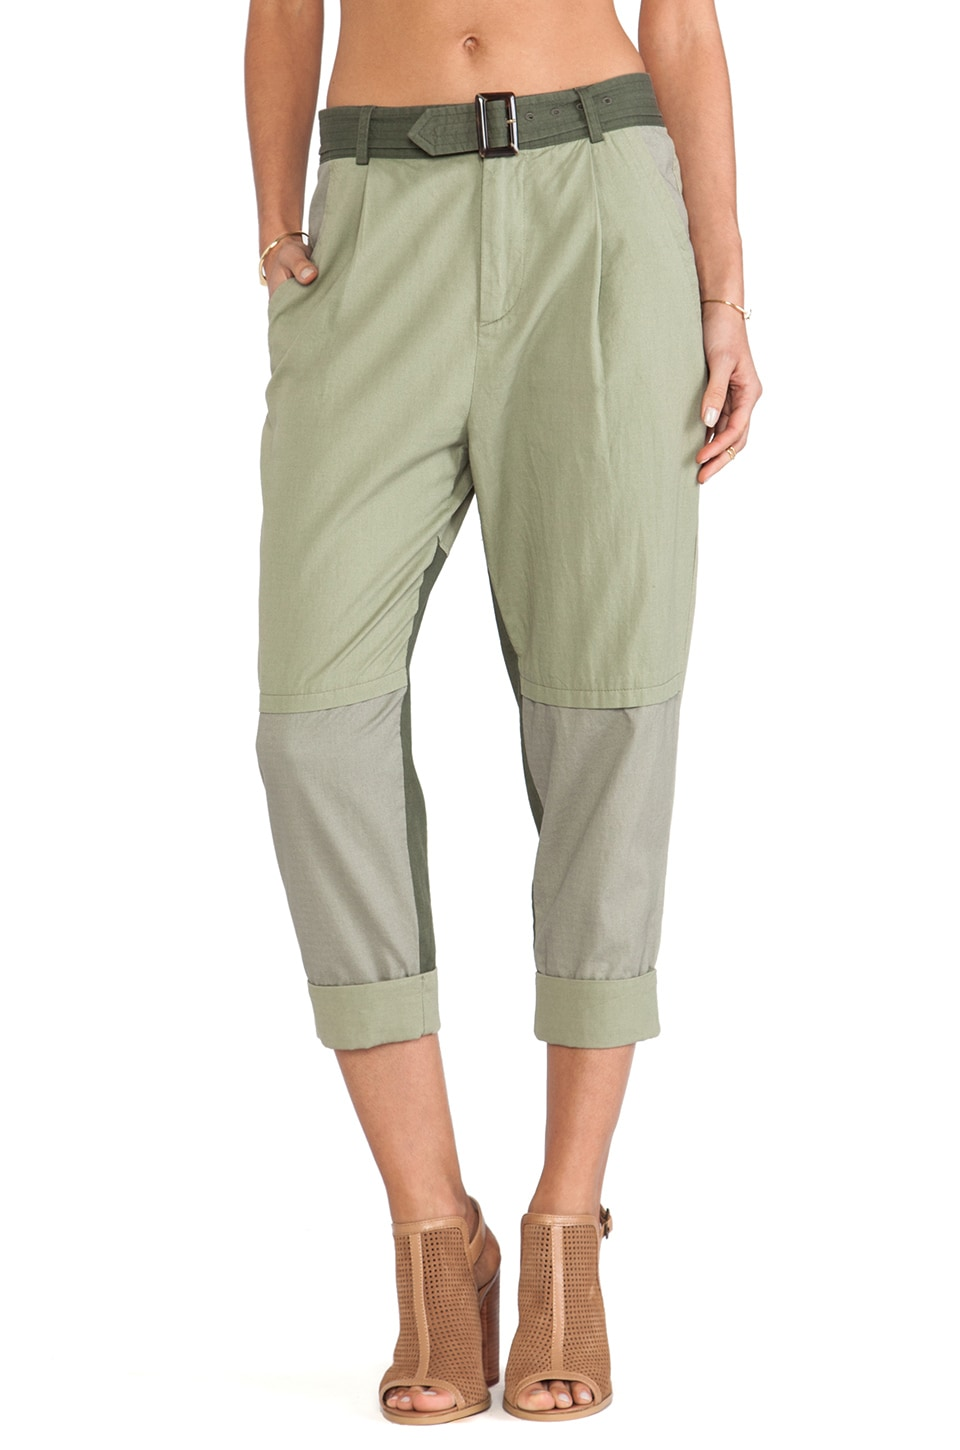 April, May Lhasa Pant in Khaki